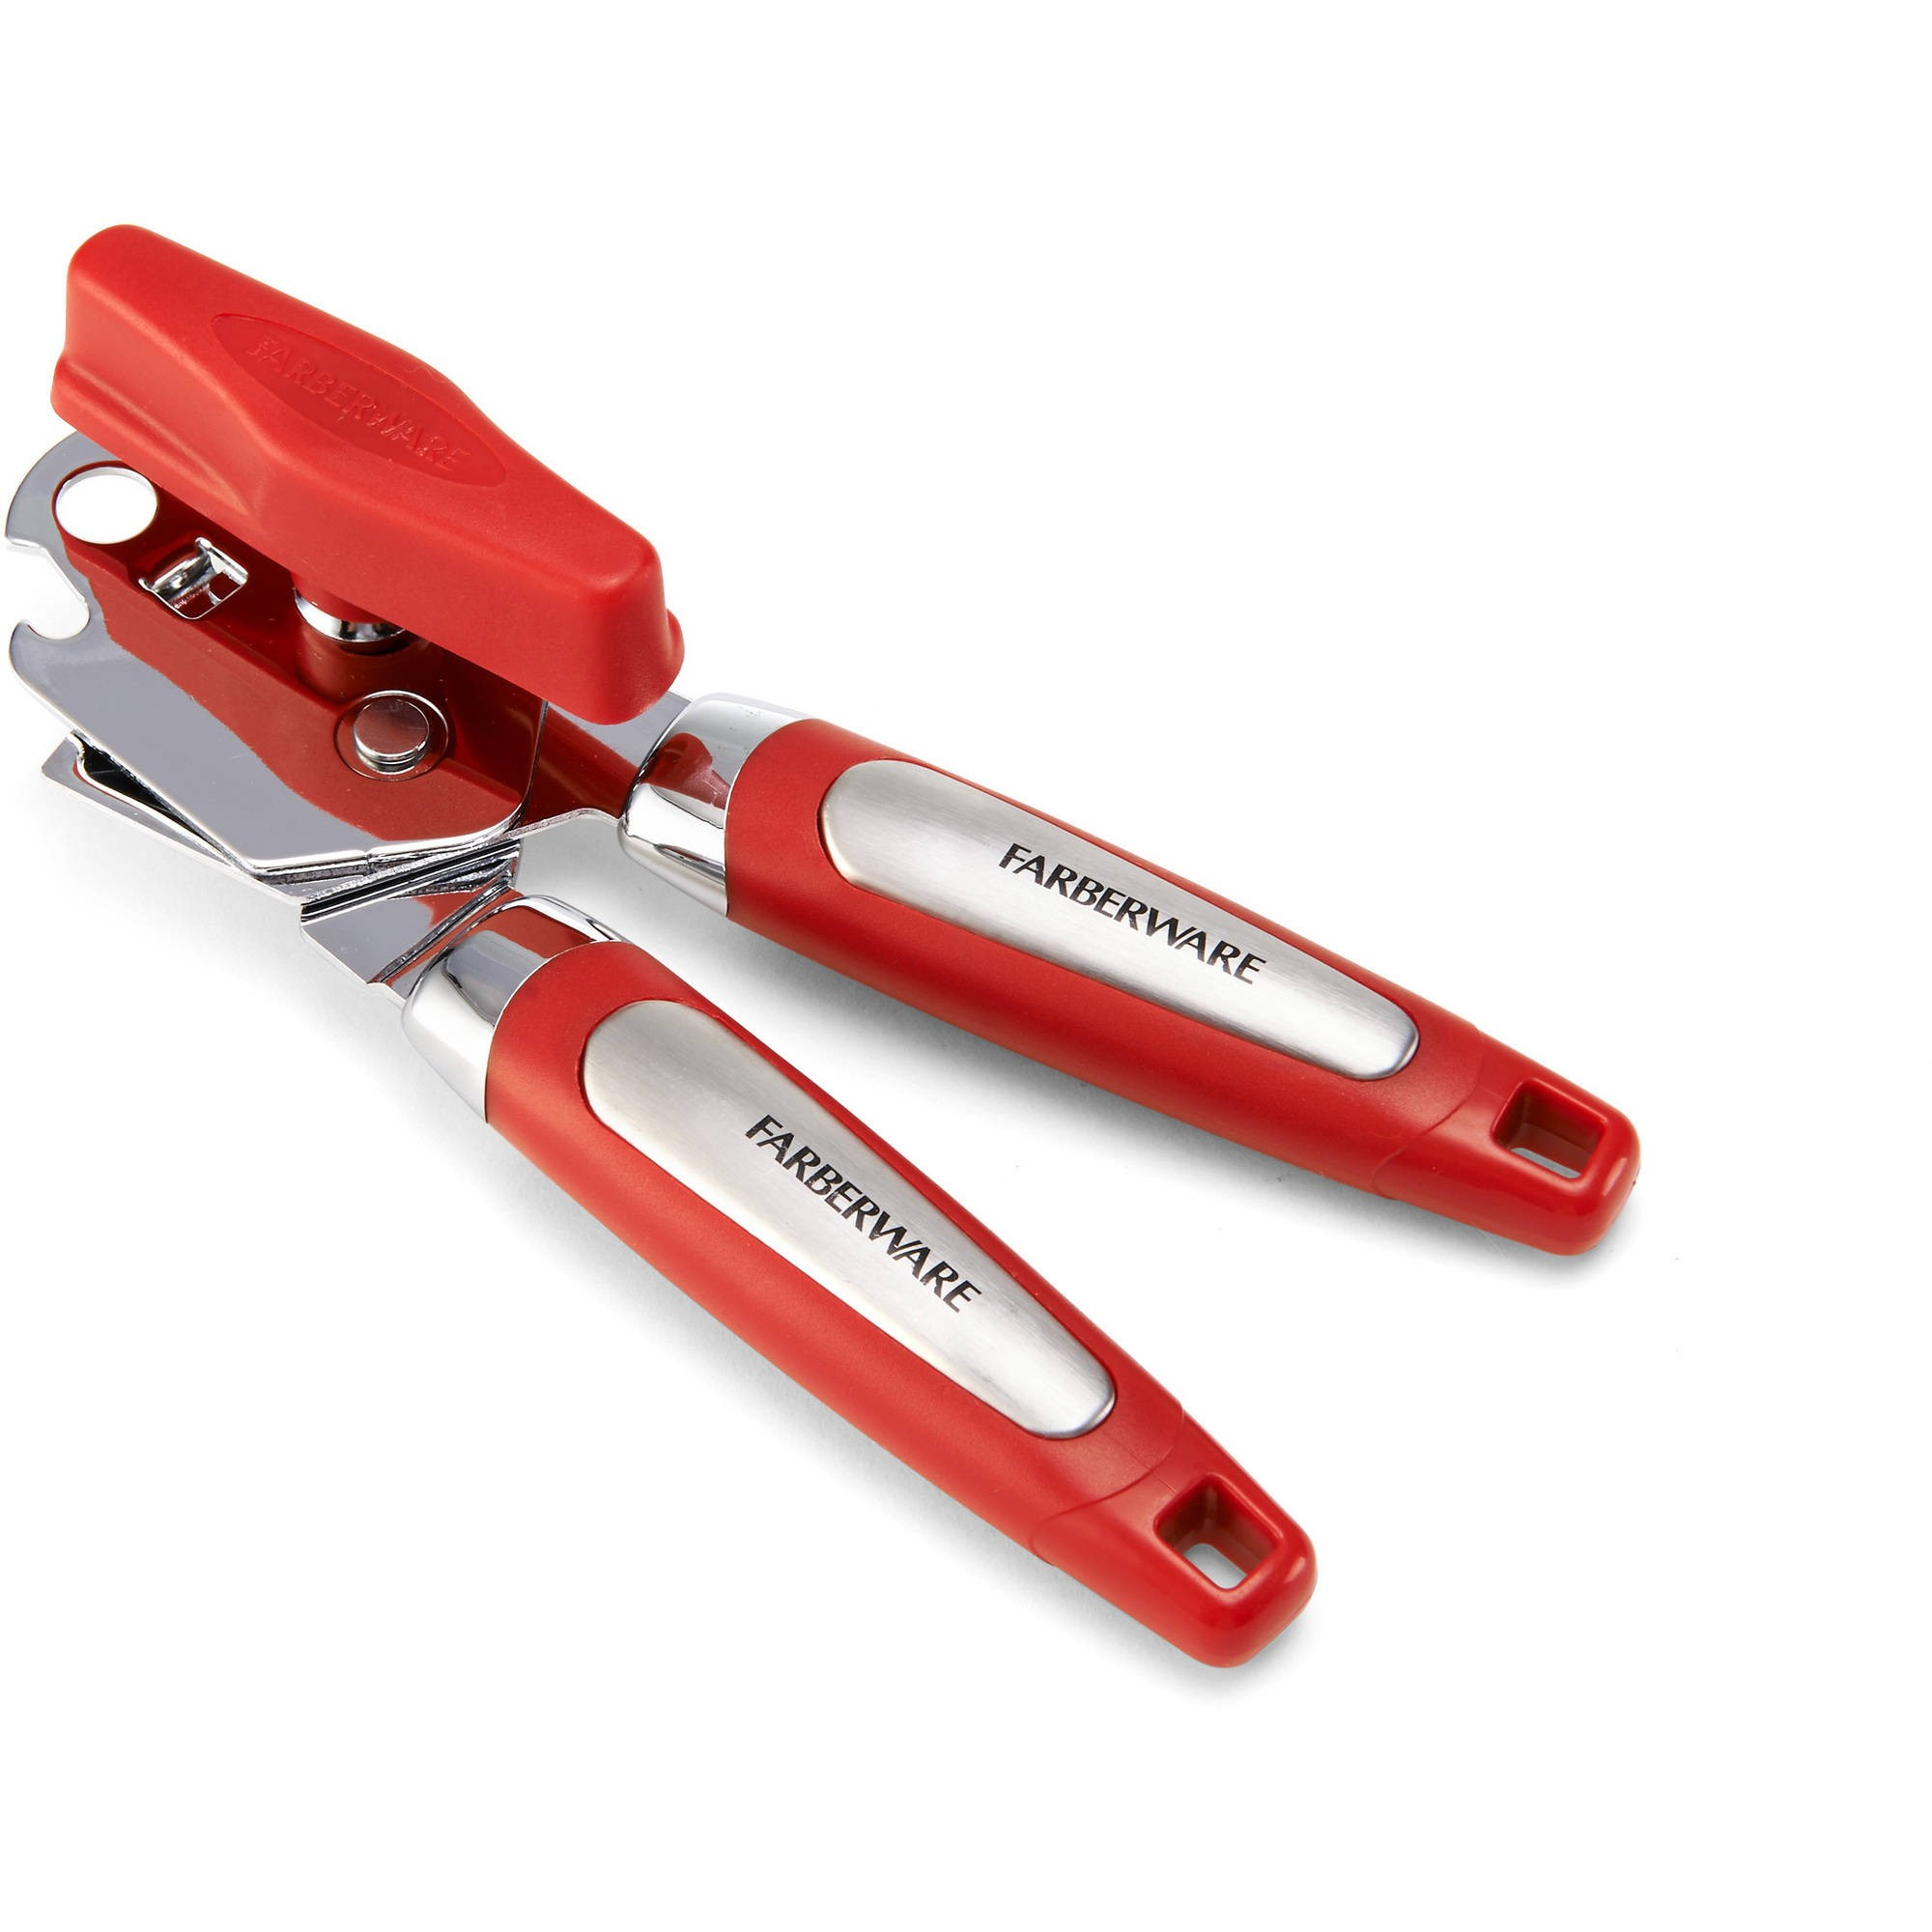 Farberware Professional Chrome Head Red Handle Can Opener